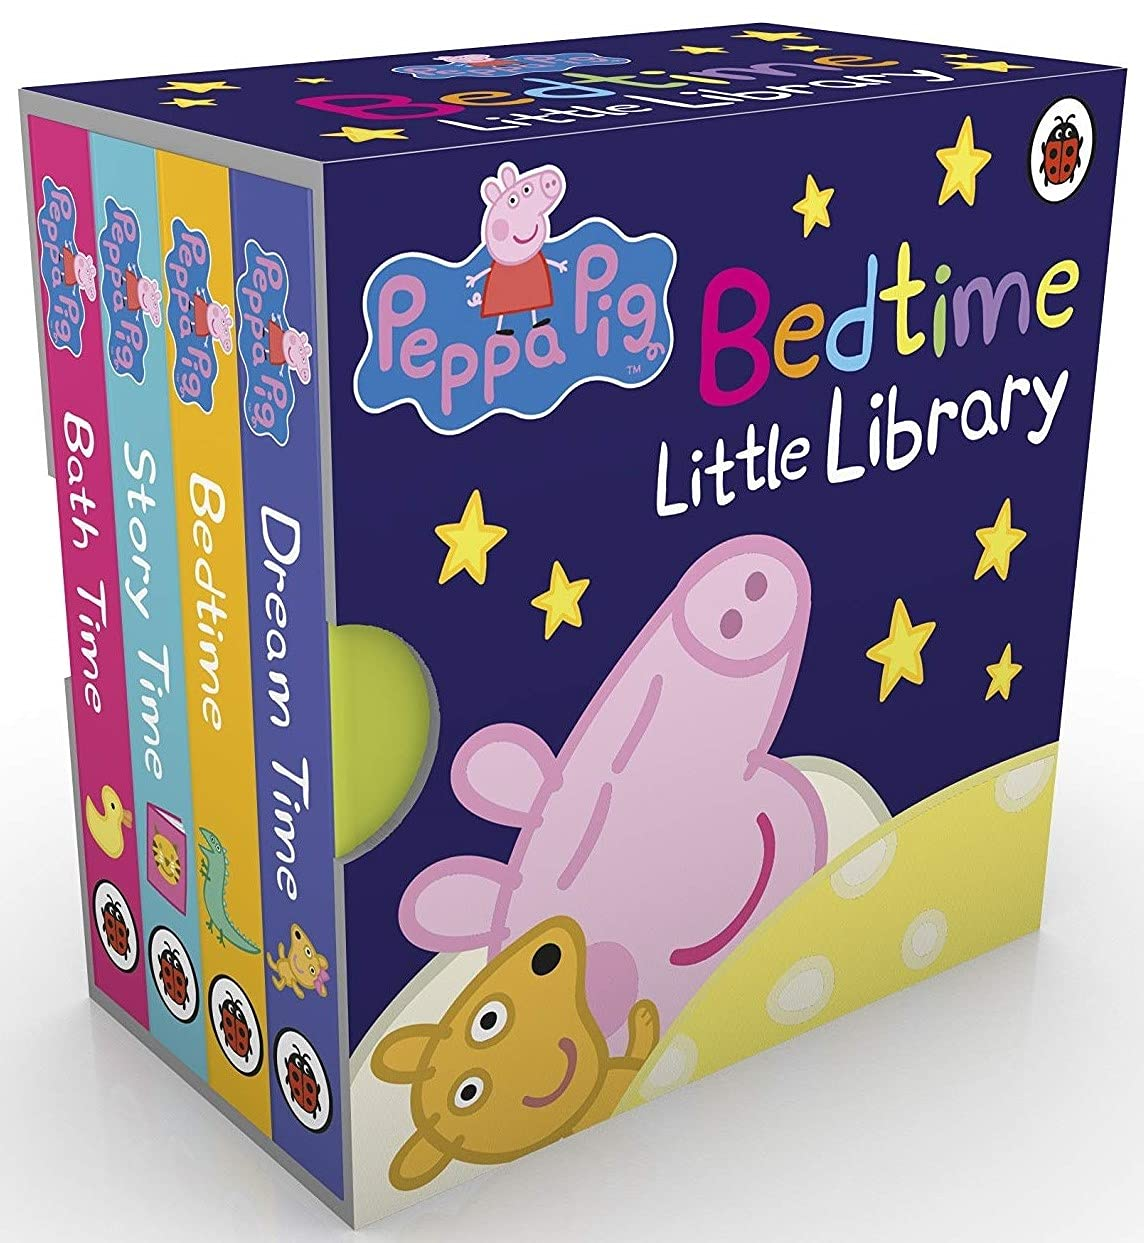 Peppa Pig: Bedtime Little Library Board book – 12 January 2017